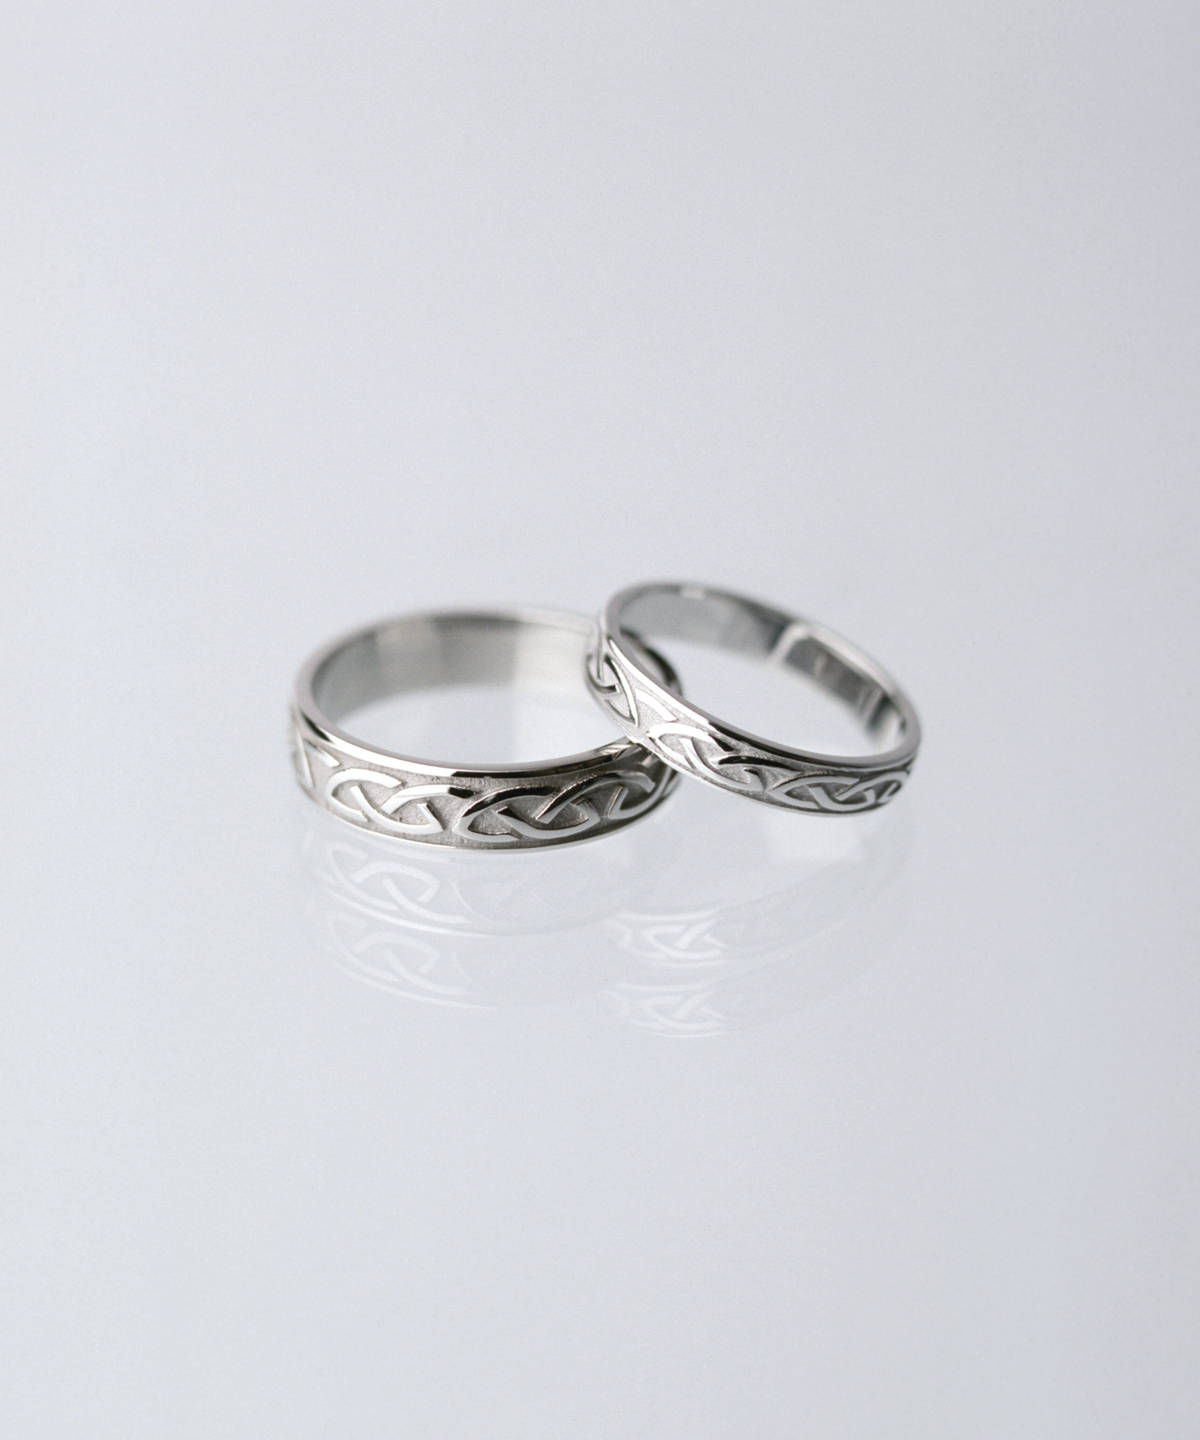 10 carat white gold lady's Celtic love knot wedding ring 3.6mmPlease note the lady's ring is on the right.